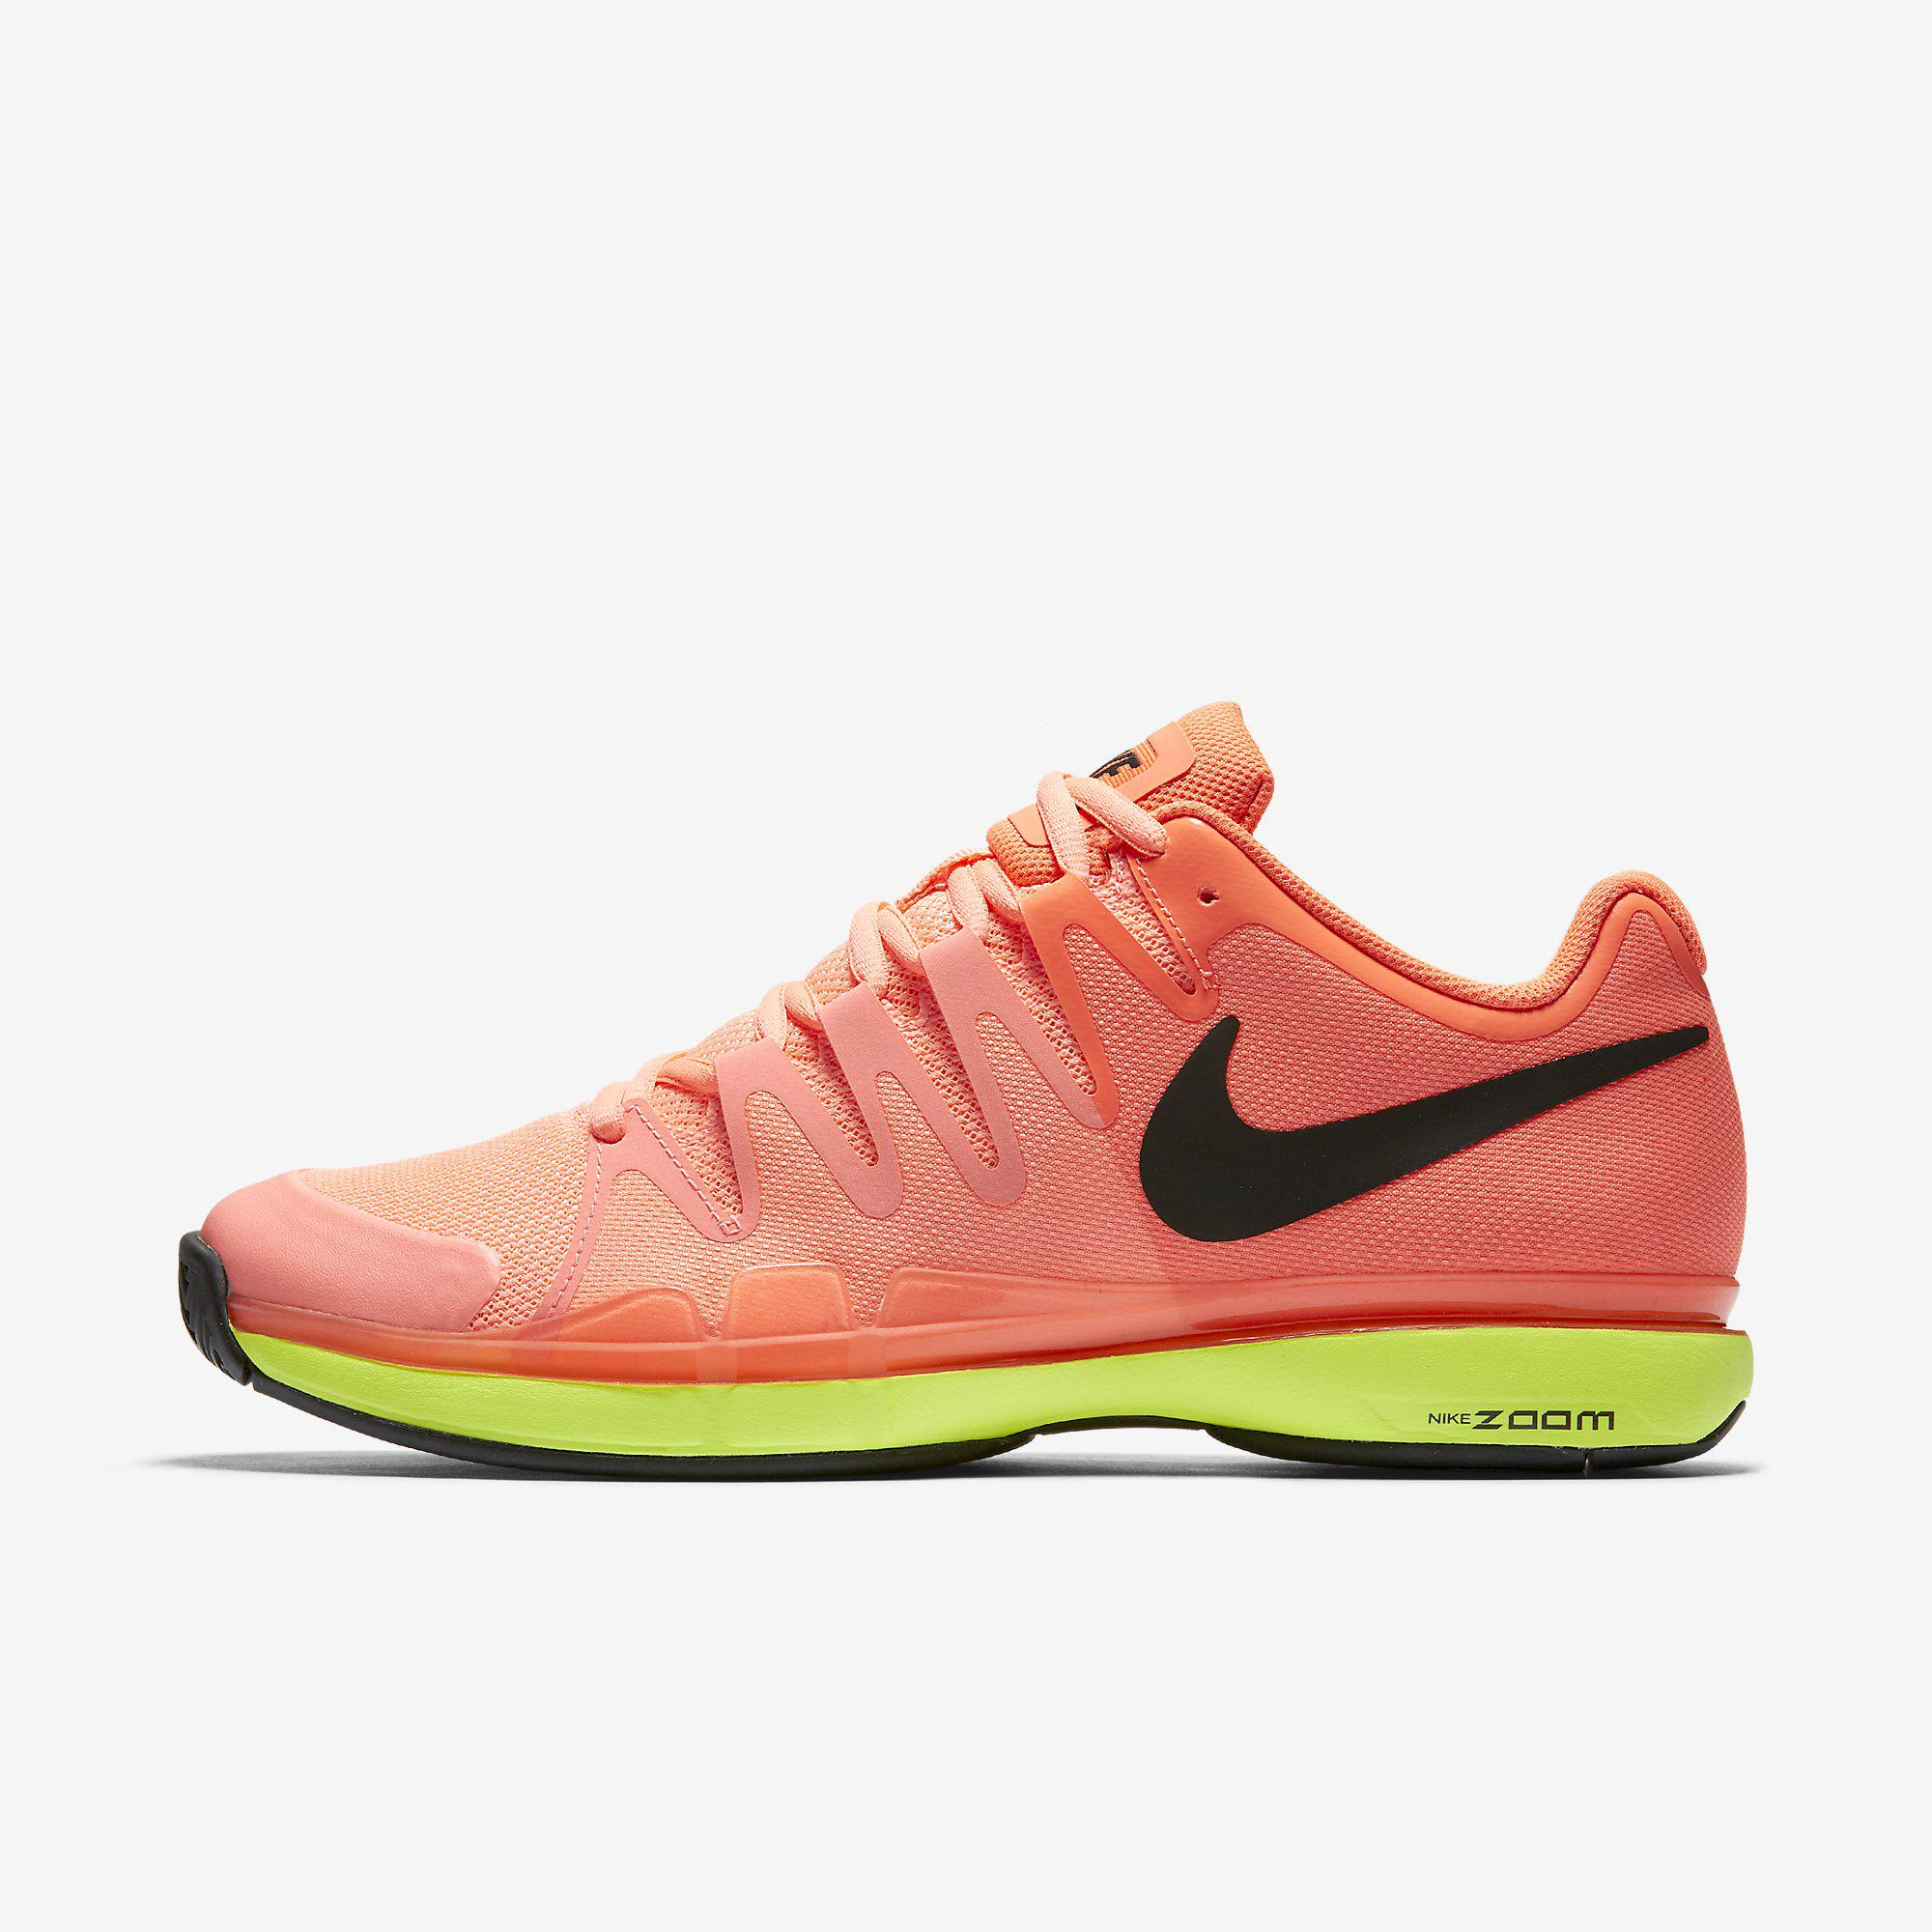 f0d6d7415079 Nike Mens Zoom Vapor 9.5 Tour Tennis Shoes - Lava Glow Hyper Orange -  Tennisnuts.com